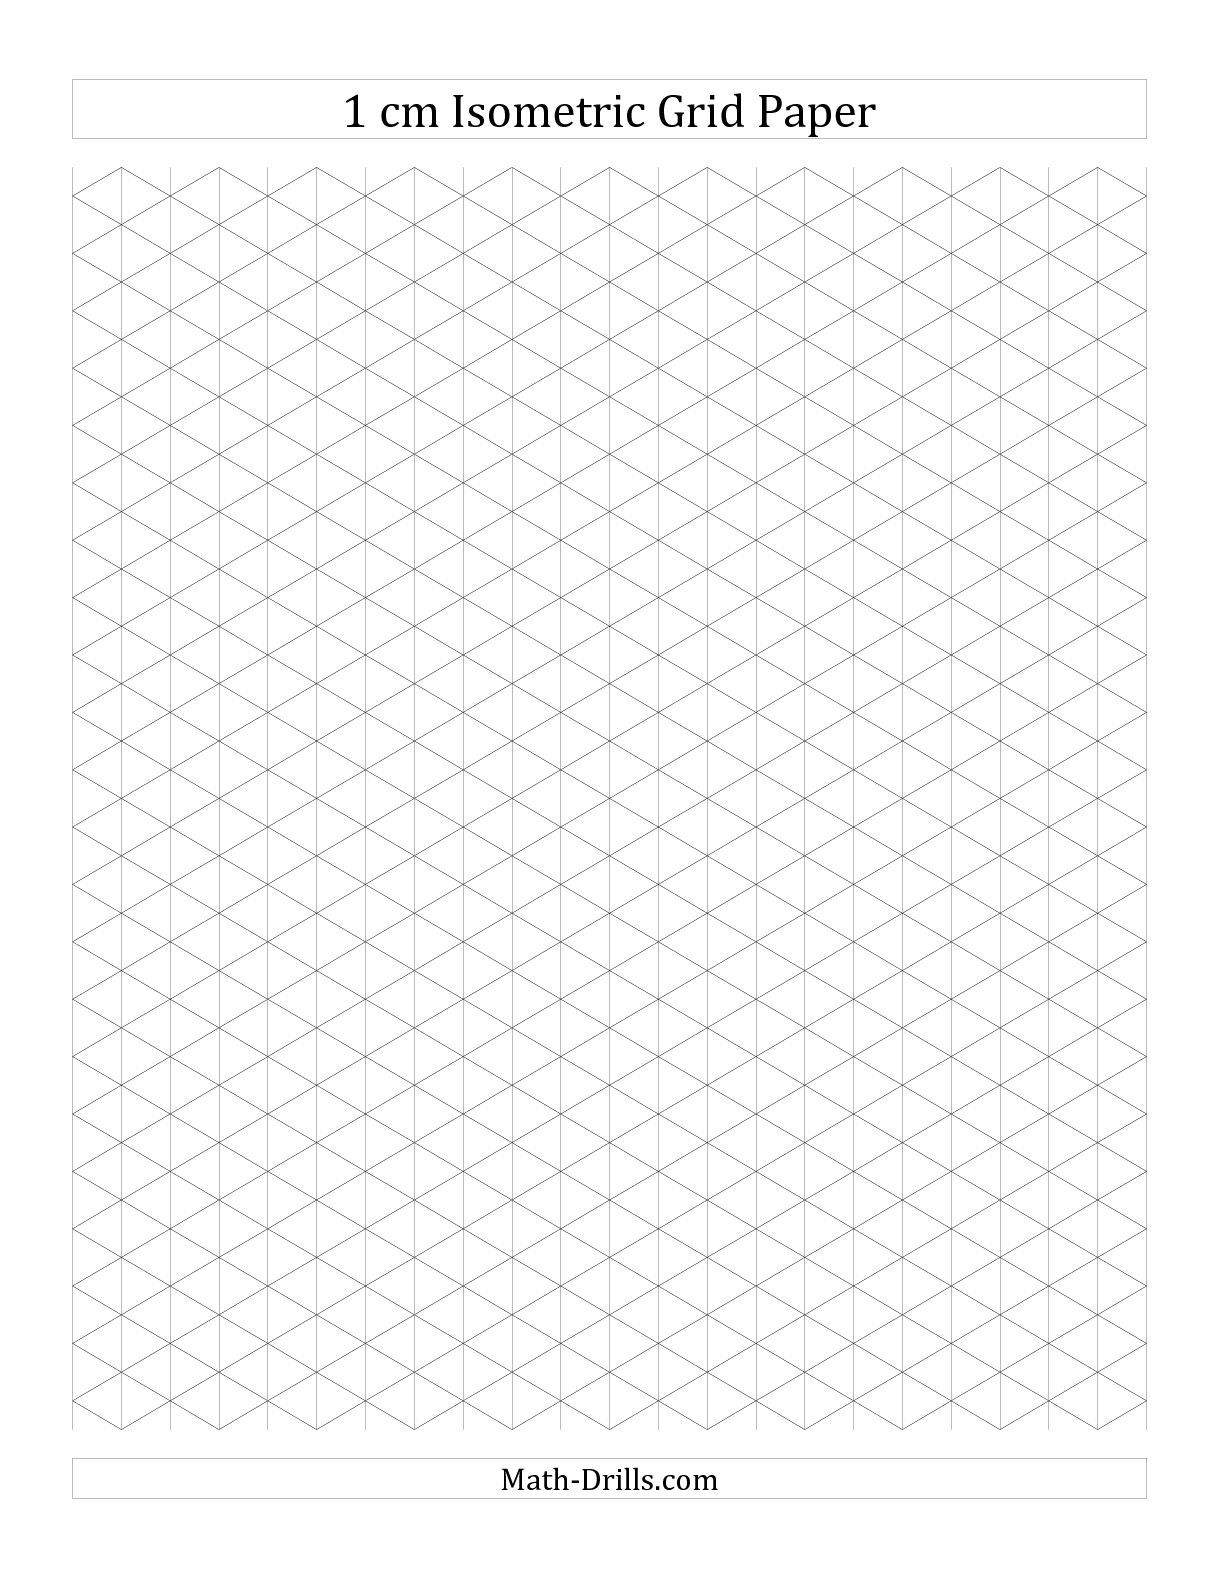 Isometric Grid Paper 1 Cm All Pin 1 224 1 584